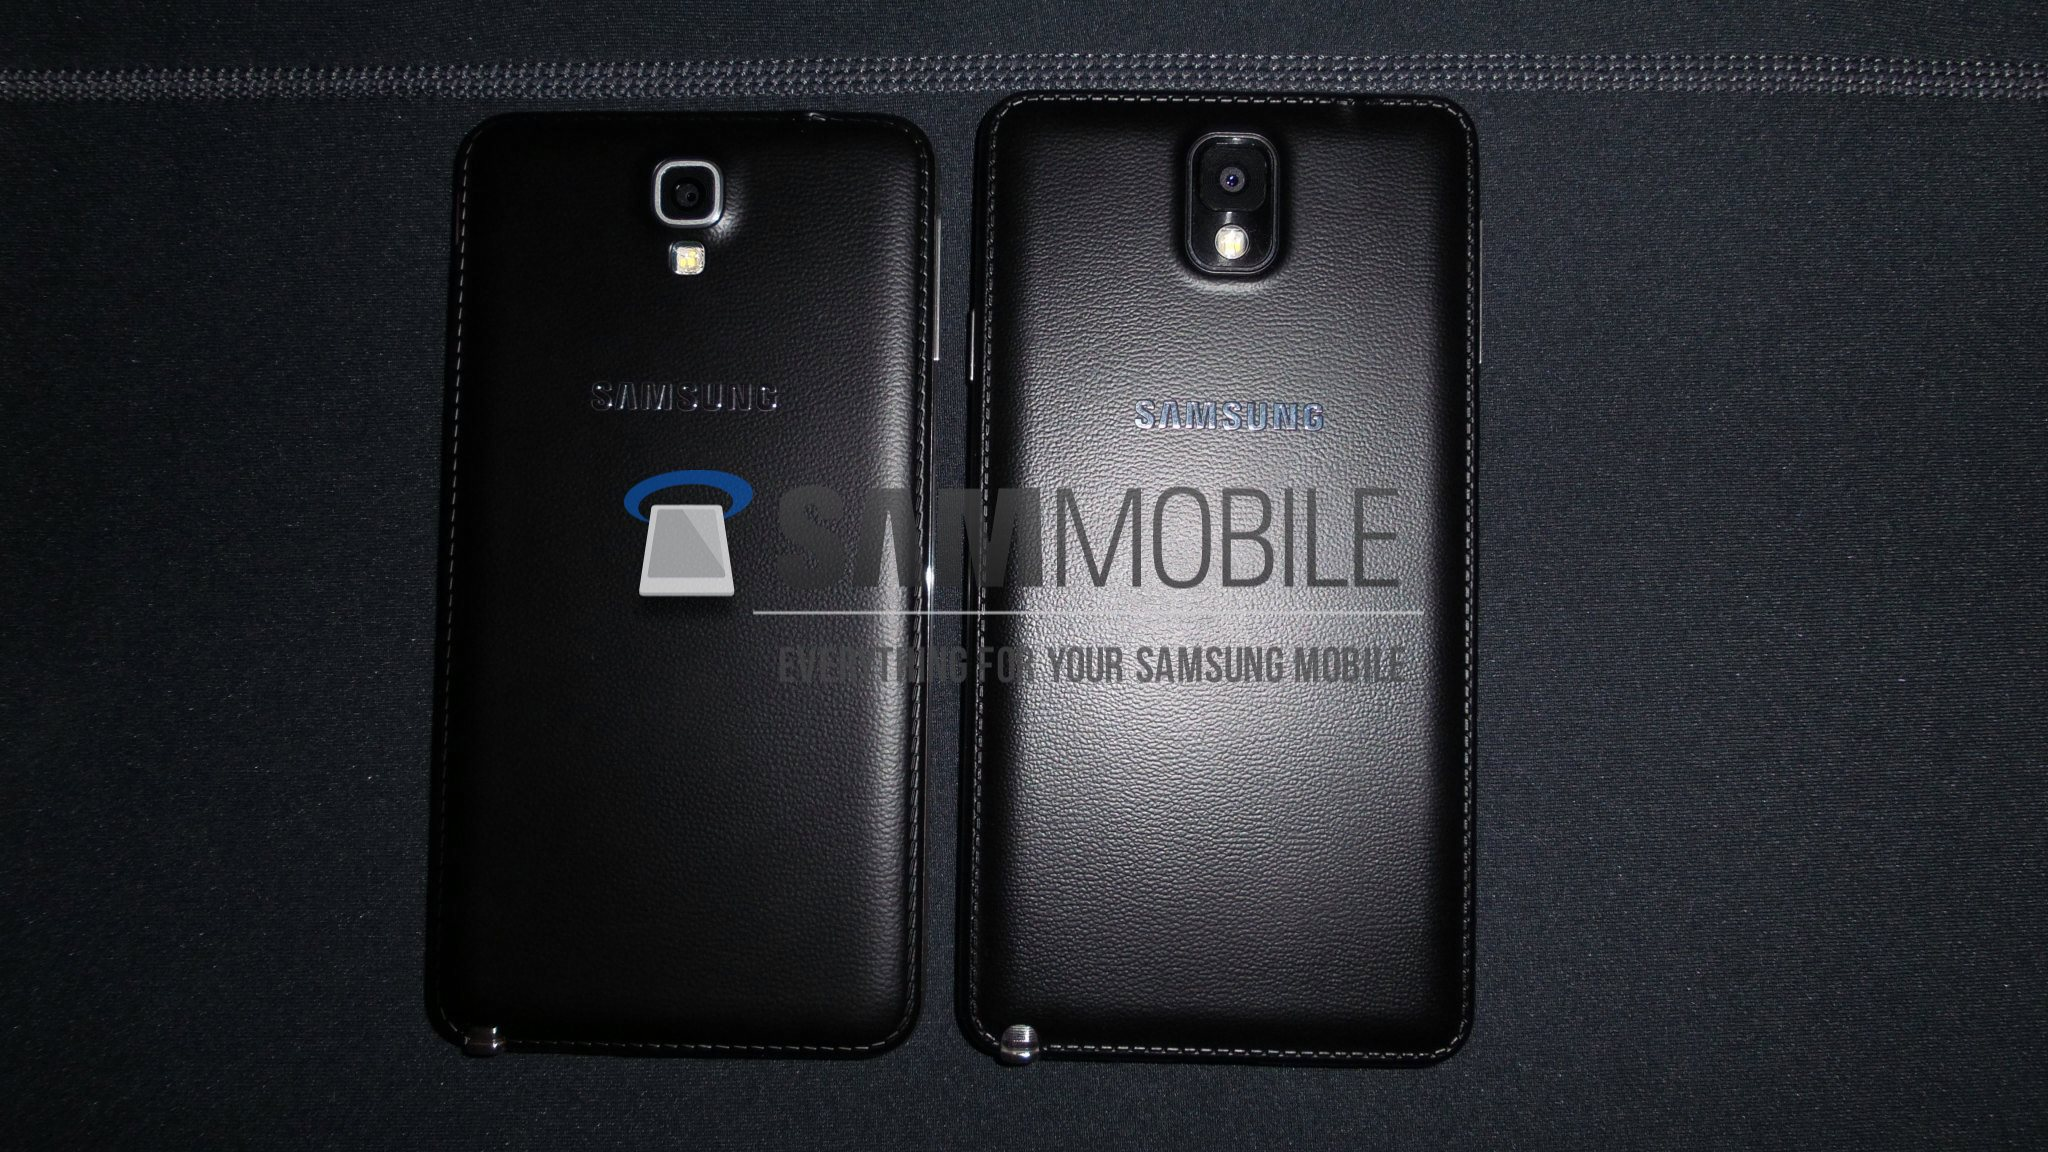 Exclusive samsung galaxy note 3 lite neo pictures specifications and benchmark results update - Samsung galaxy note 3 lite vs note 3 ...